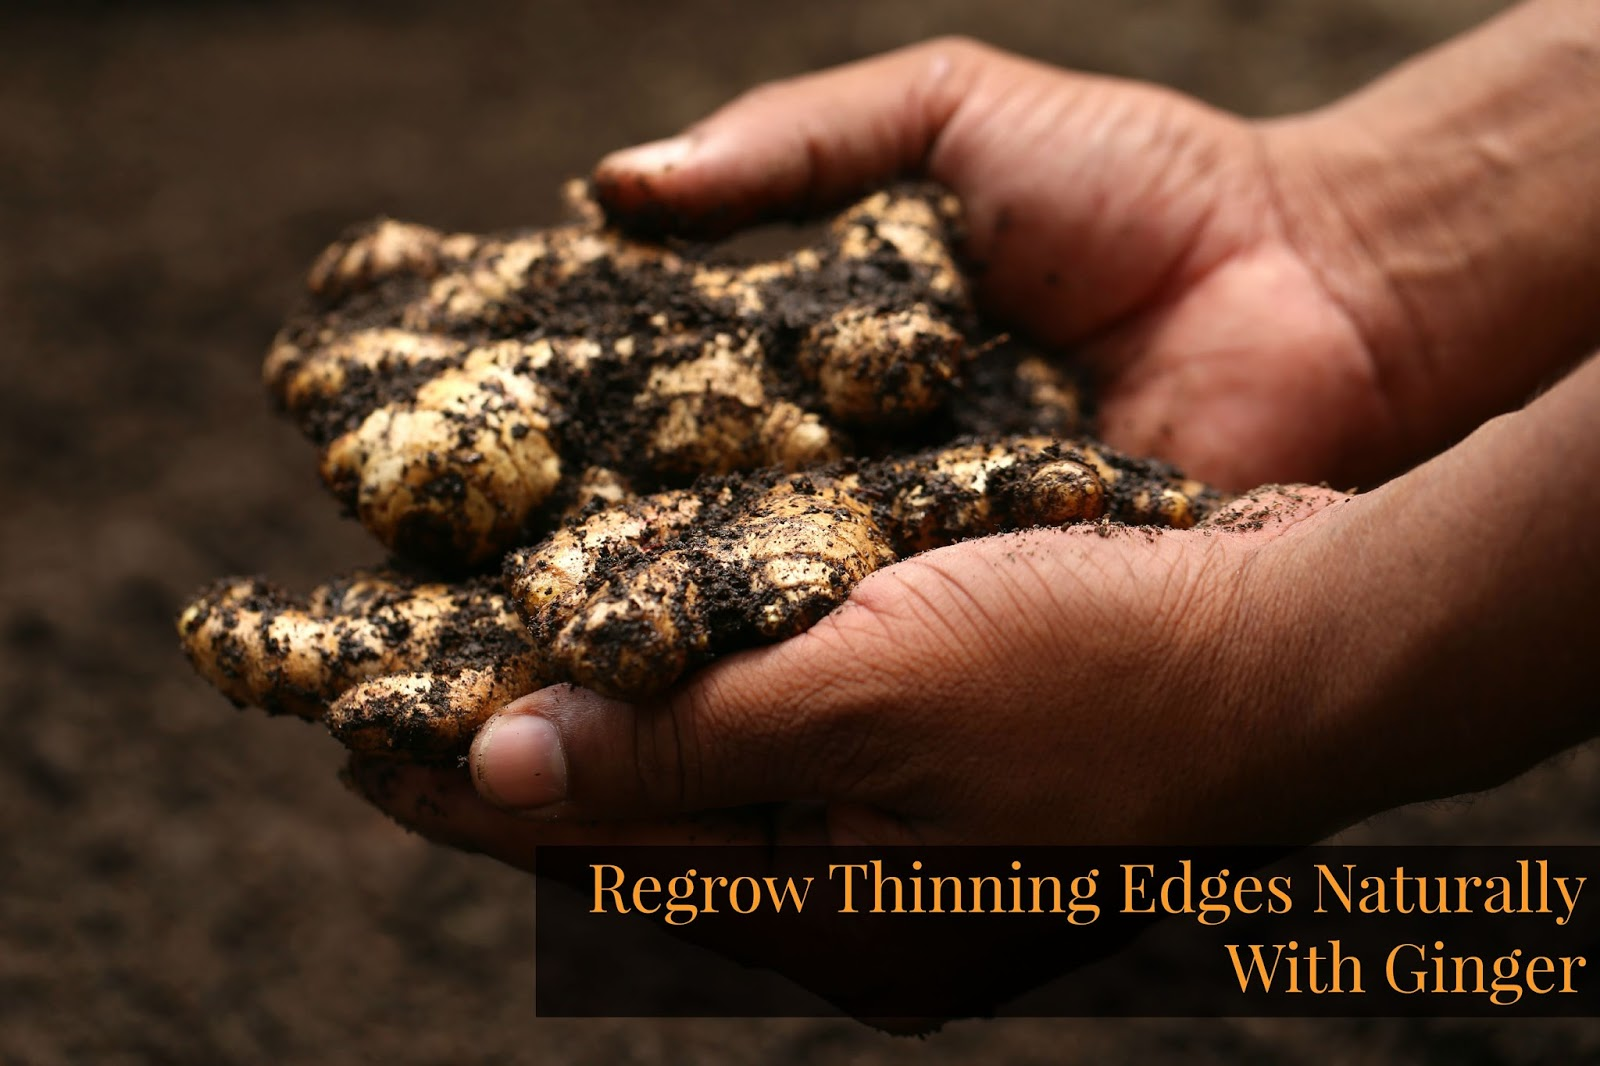 Regrow Thinning Edges Naturally With Ginger